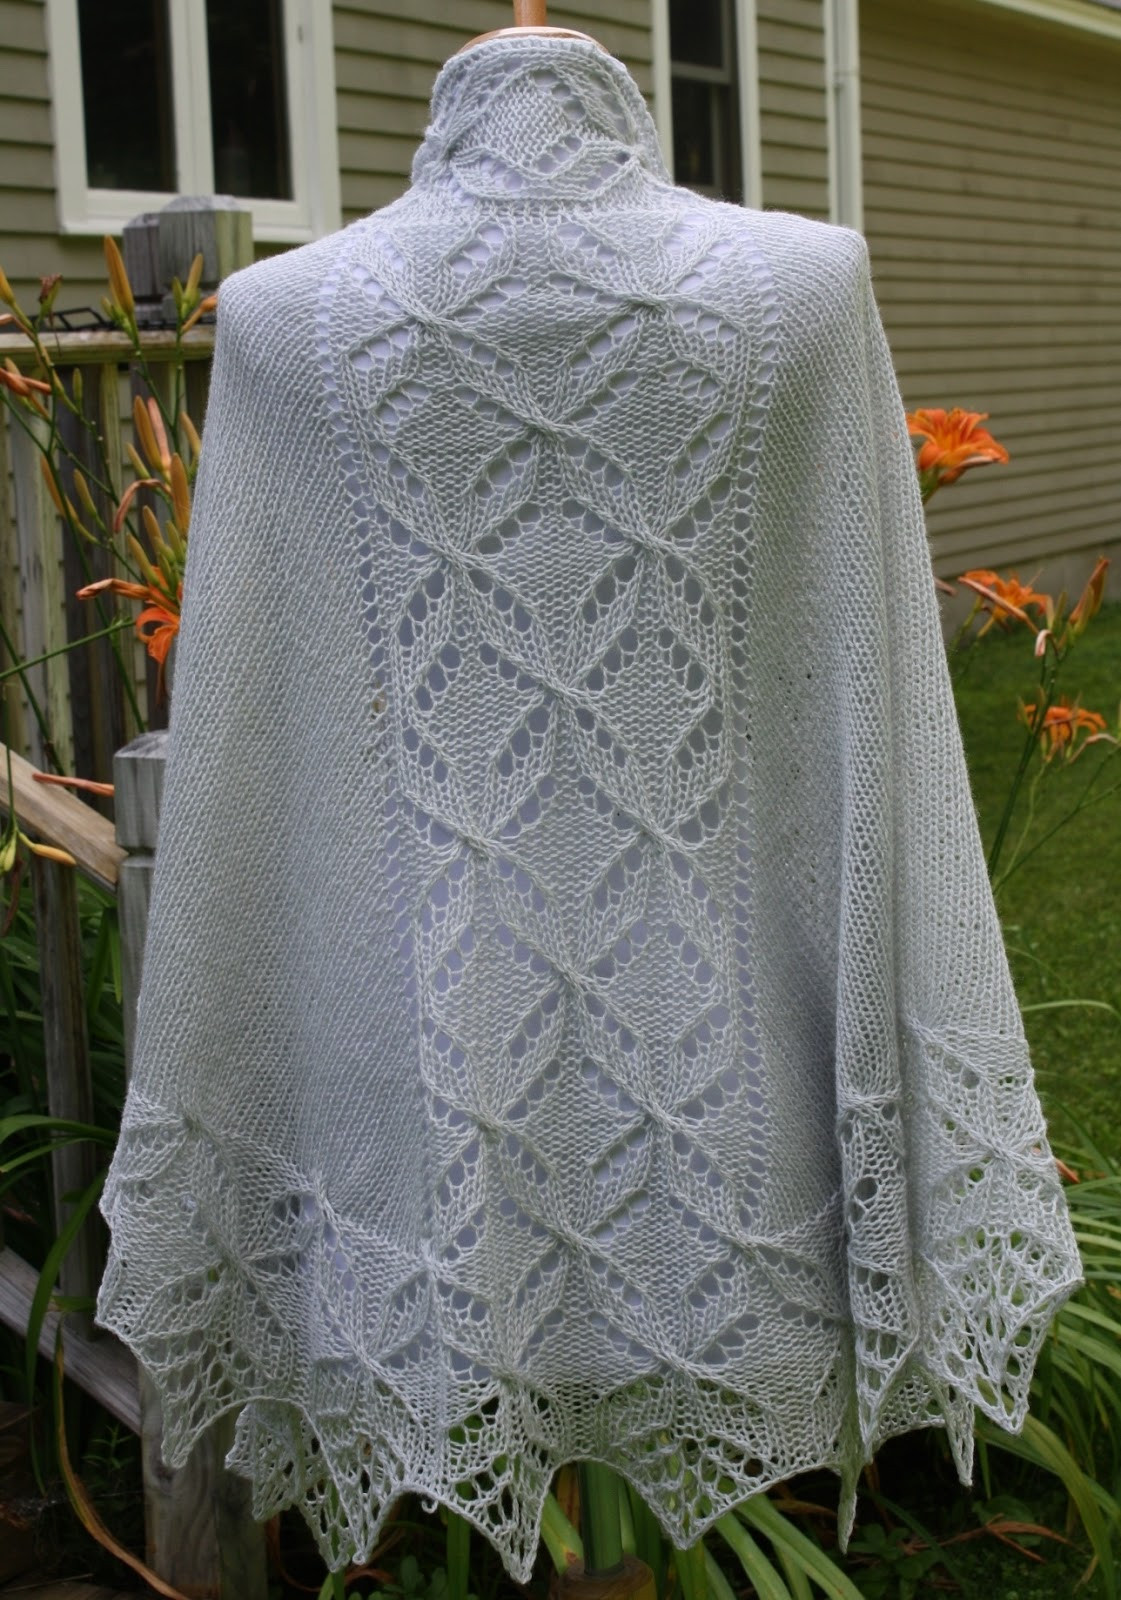 Best Of All Knitted Lace Pattern Release Lucky Quatrefoil Shawl Knit Lace Shawl Of Contemporary 41 Pics Knit Lace Shawl